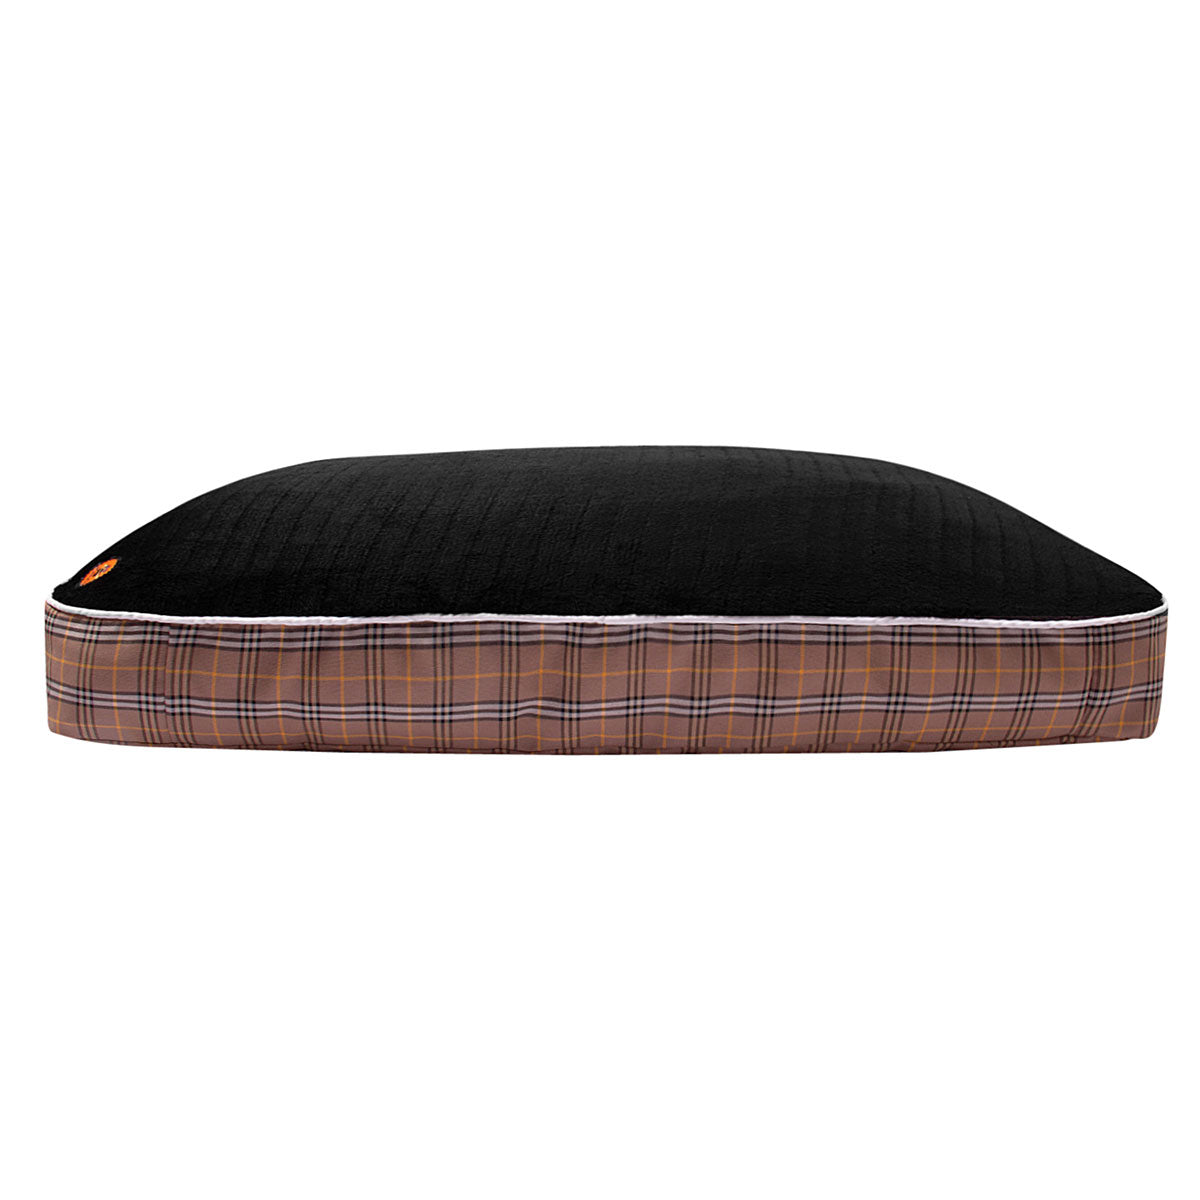 Halo Classic Plaid Rectangular Dog Bed_2777